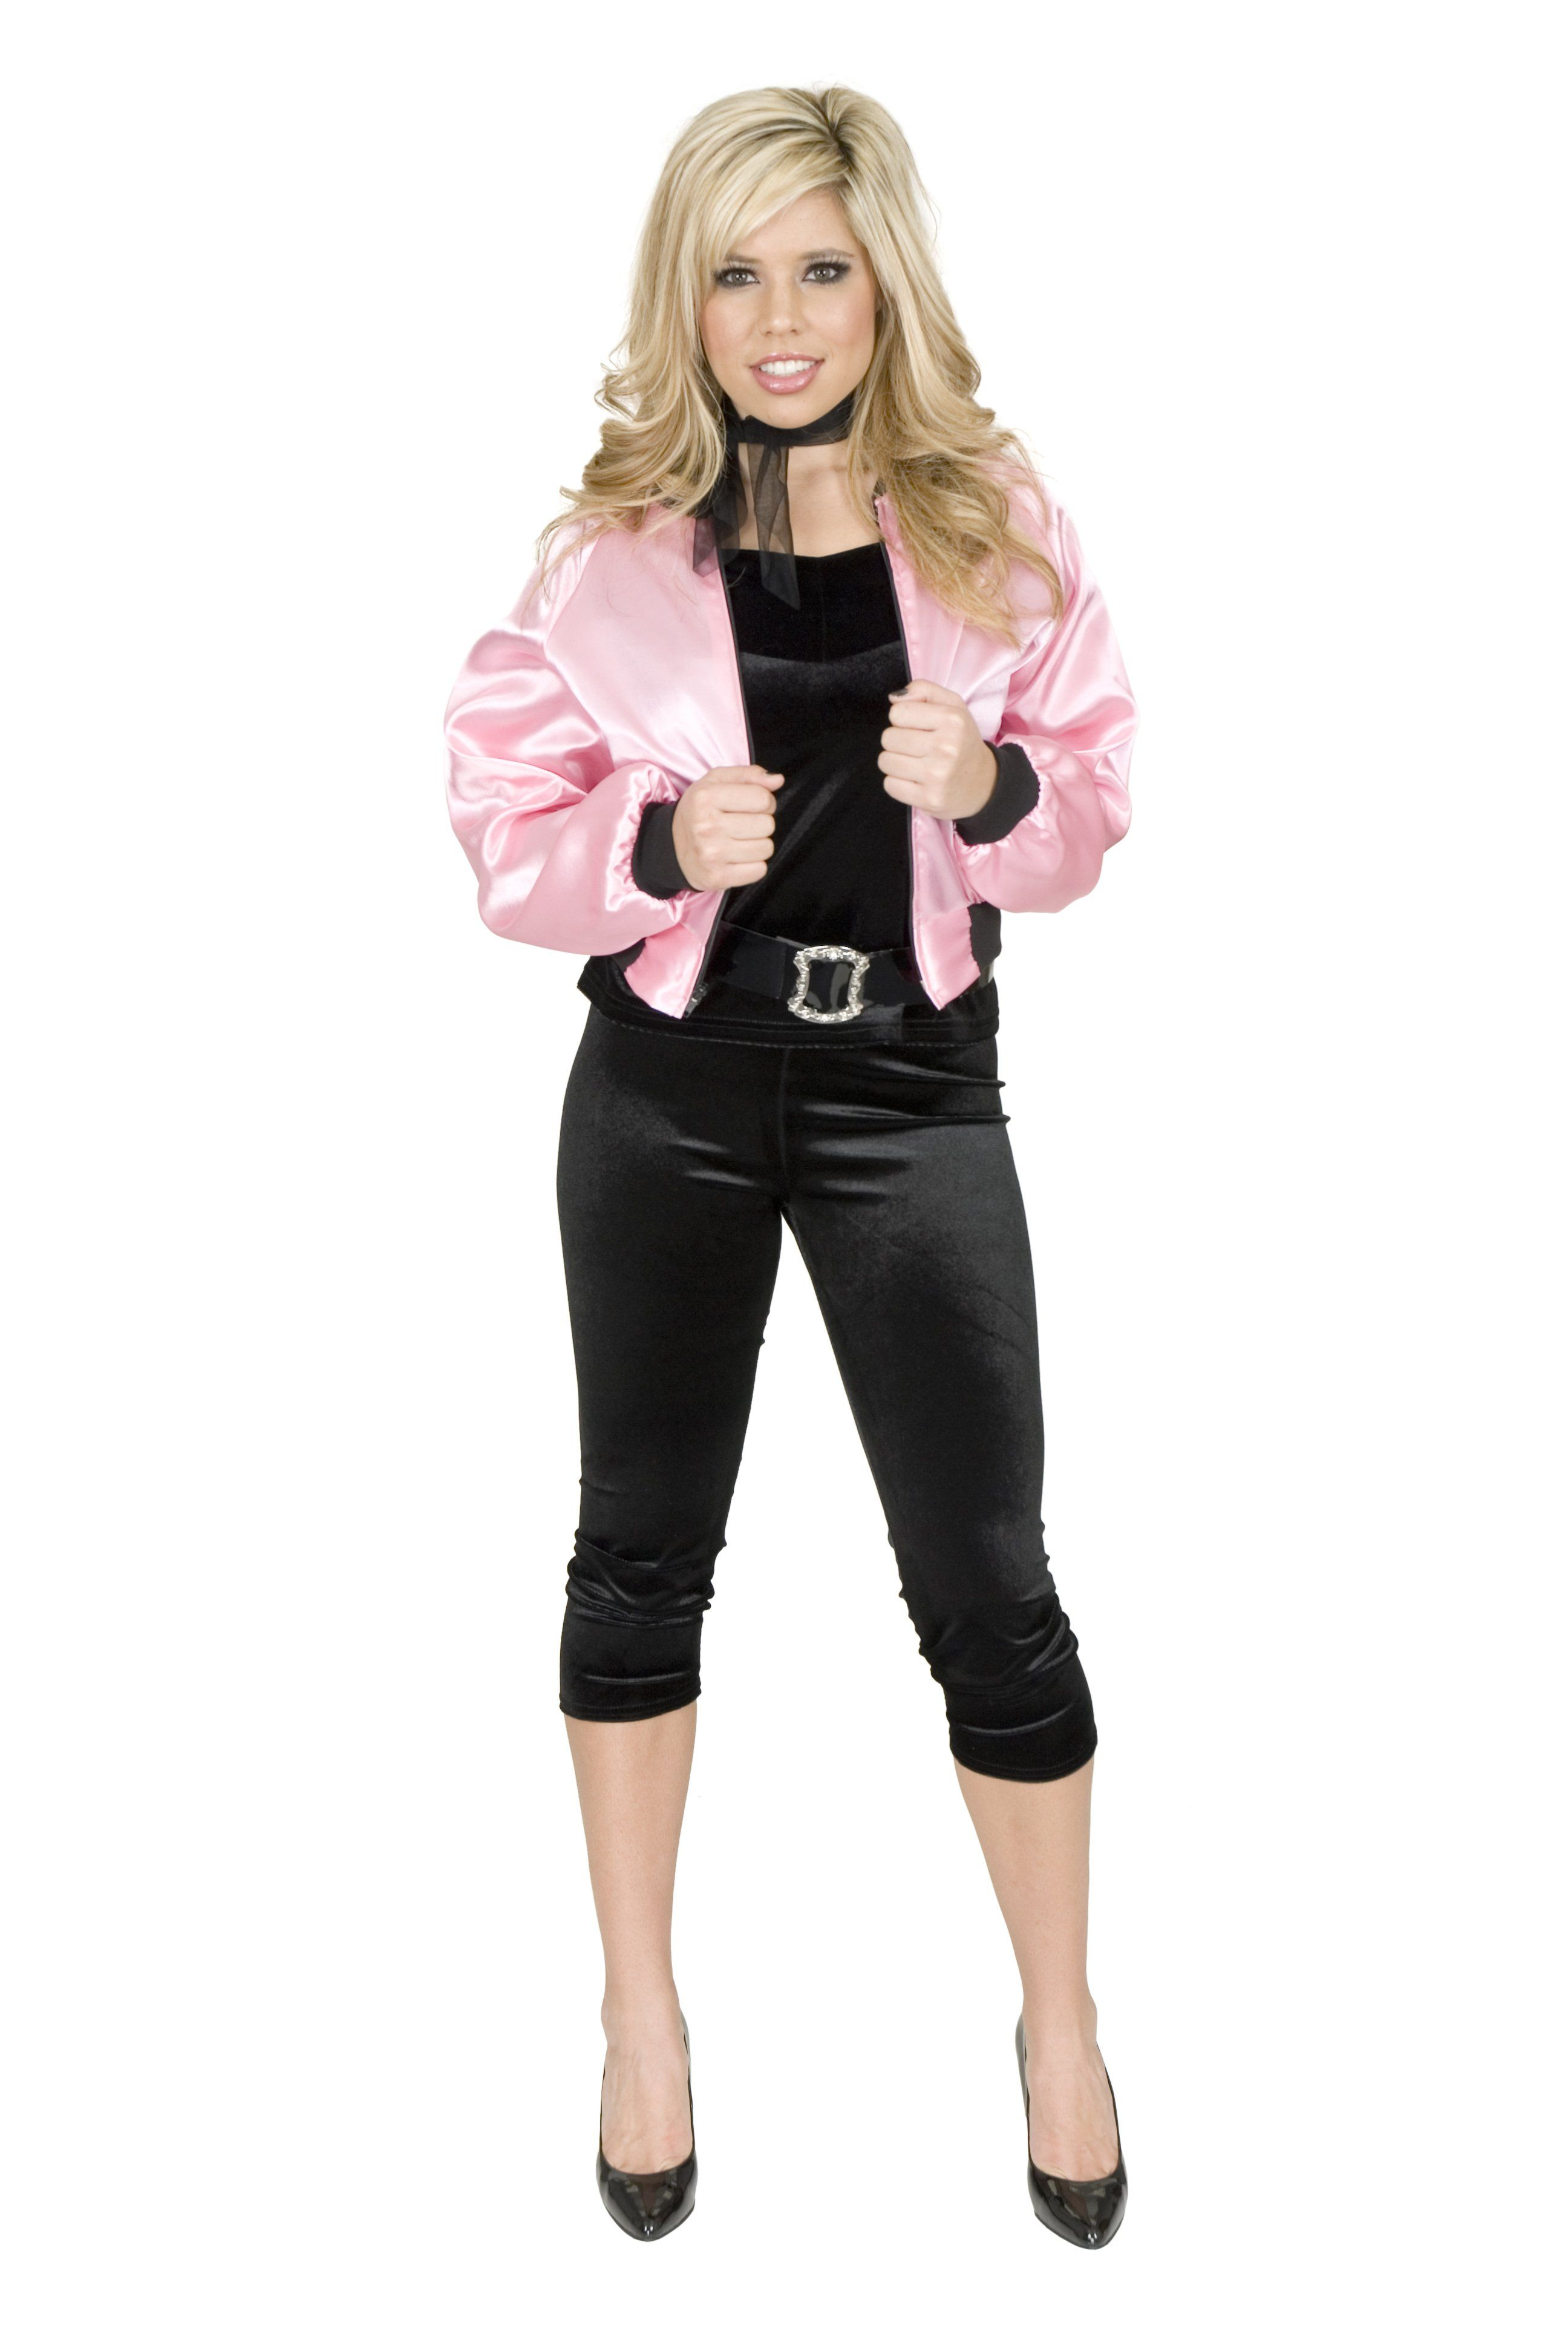 easy to duplicate outfit. Going to be one of the Pink Ladies for Halloween  sc 1 st  Pinterest & easy to duplicate outfit. Going to be one of the Pink Ladies for ...